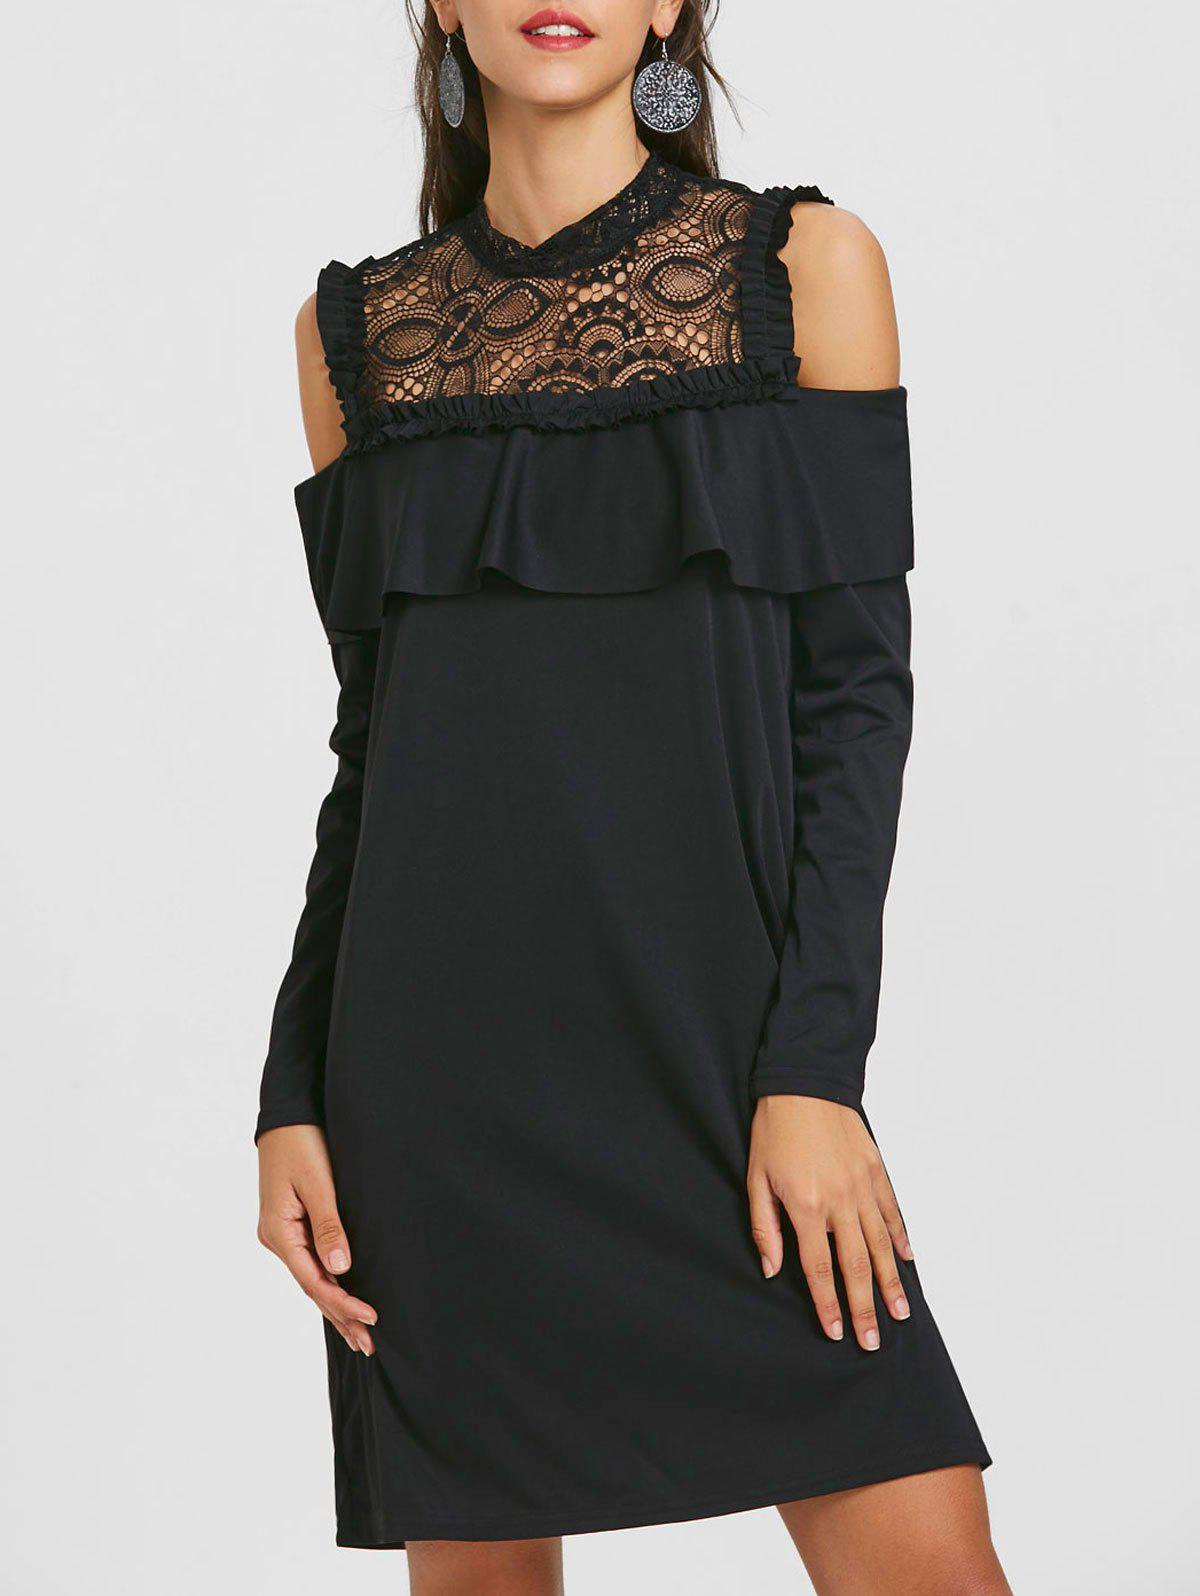 Lace Trim Open Shoulder Ruffle Dress - BLACK M